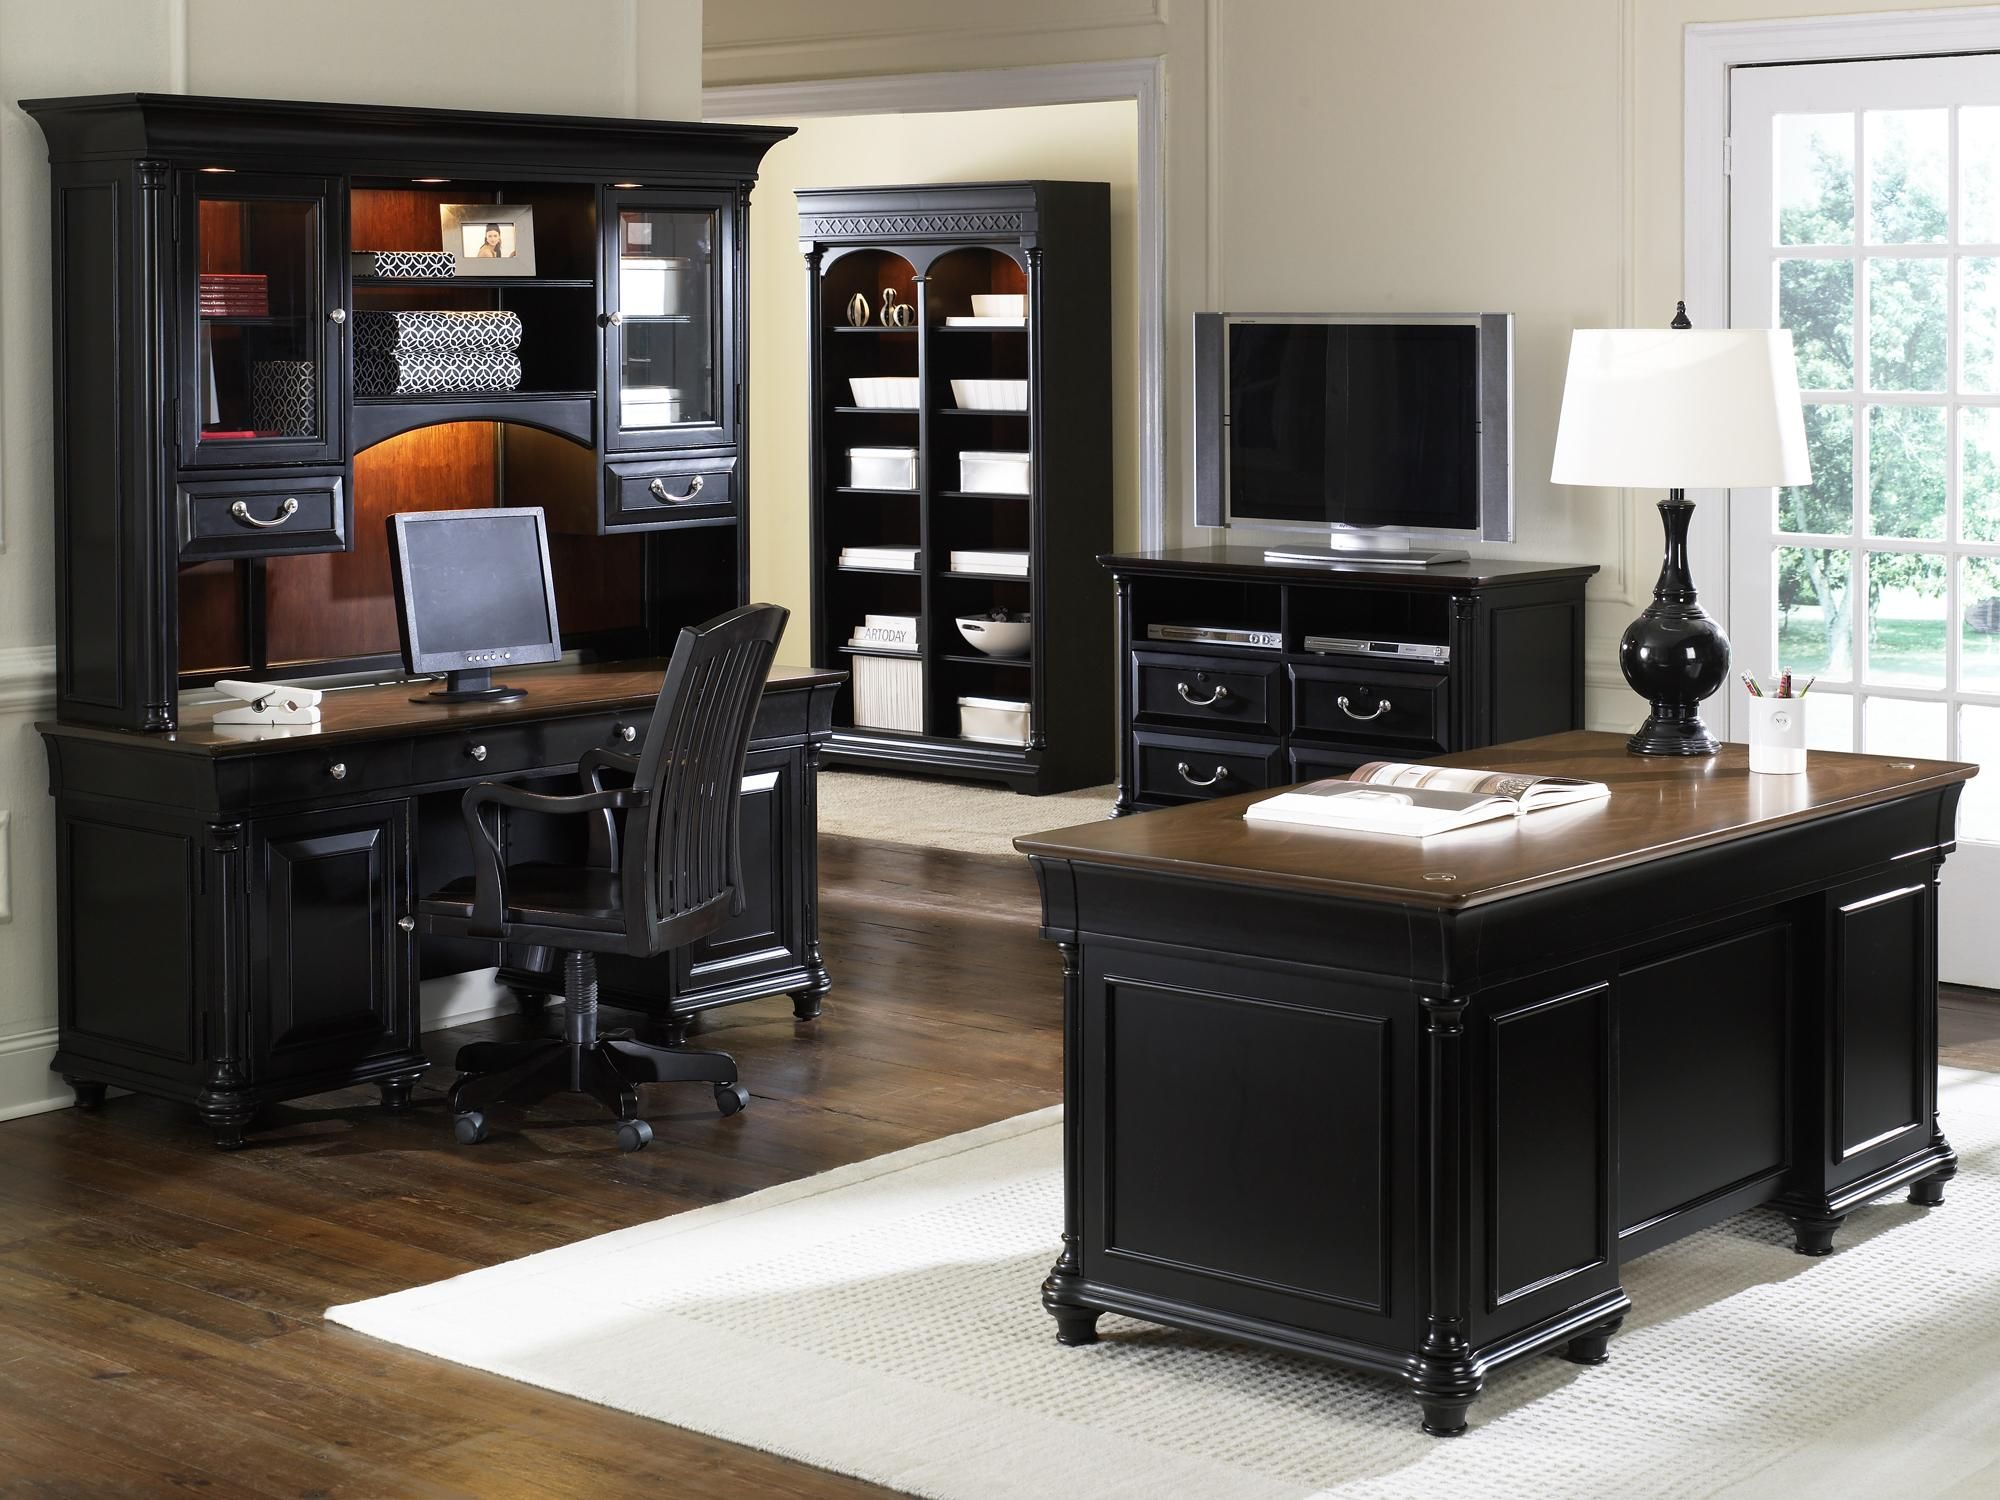 executive office ideas. St. Ives Jr Executive Office Set By Liberty Furniture Ideas